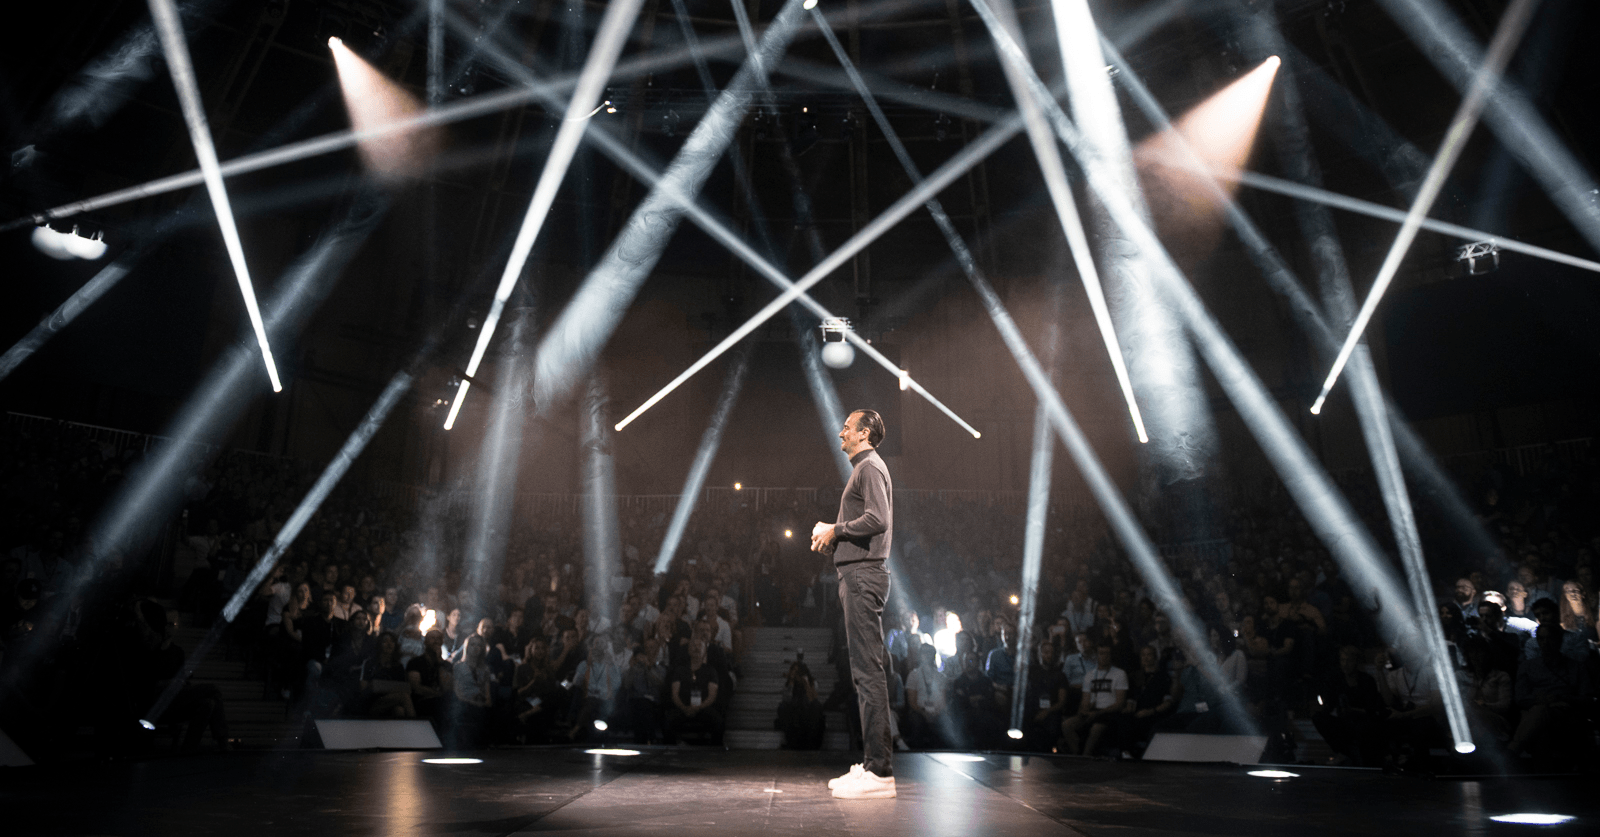 TNW2019 Daily: Over 350 speakers confirmed!